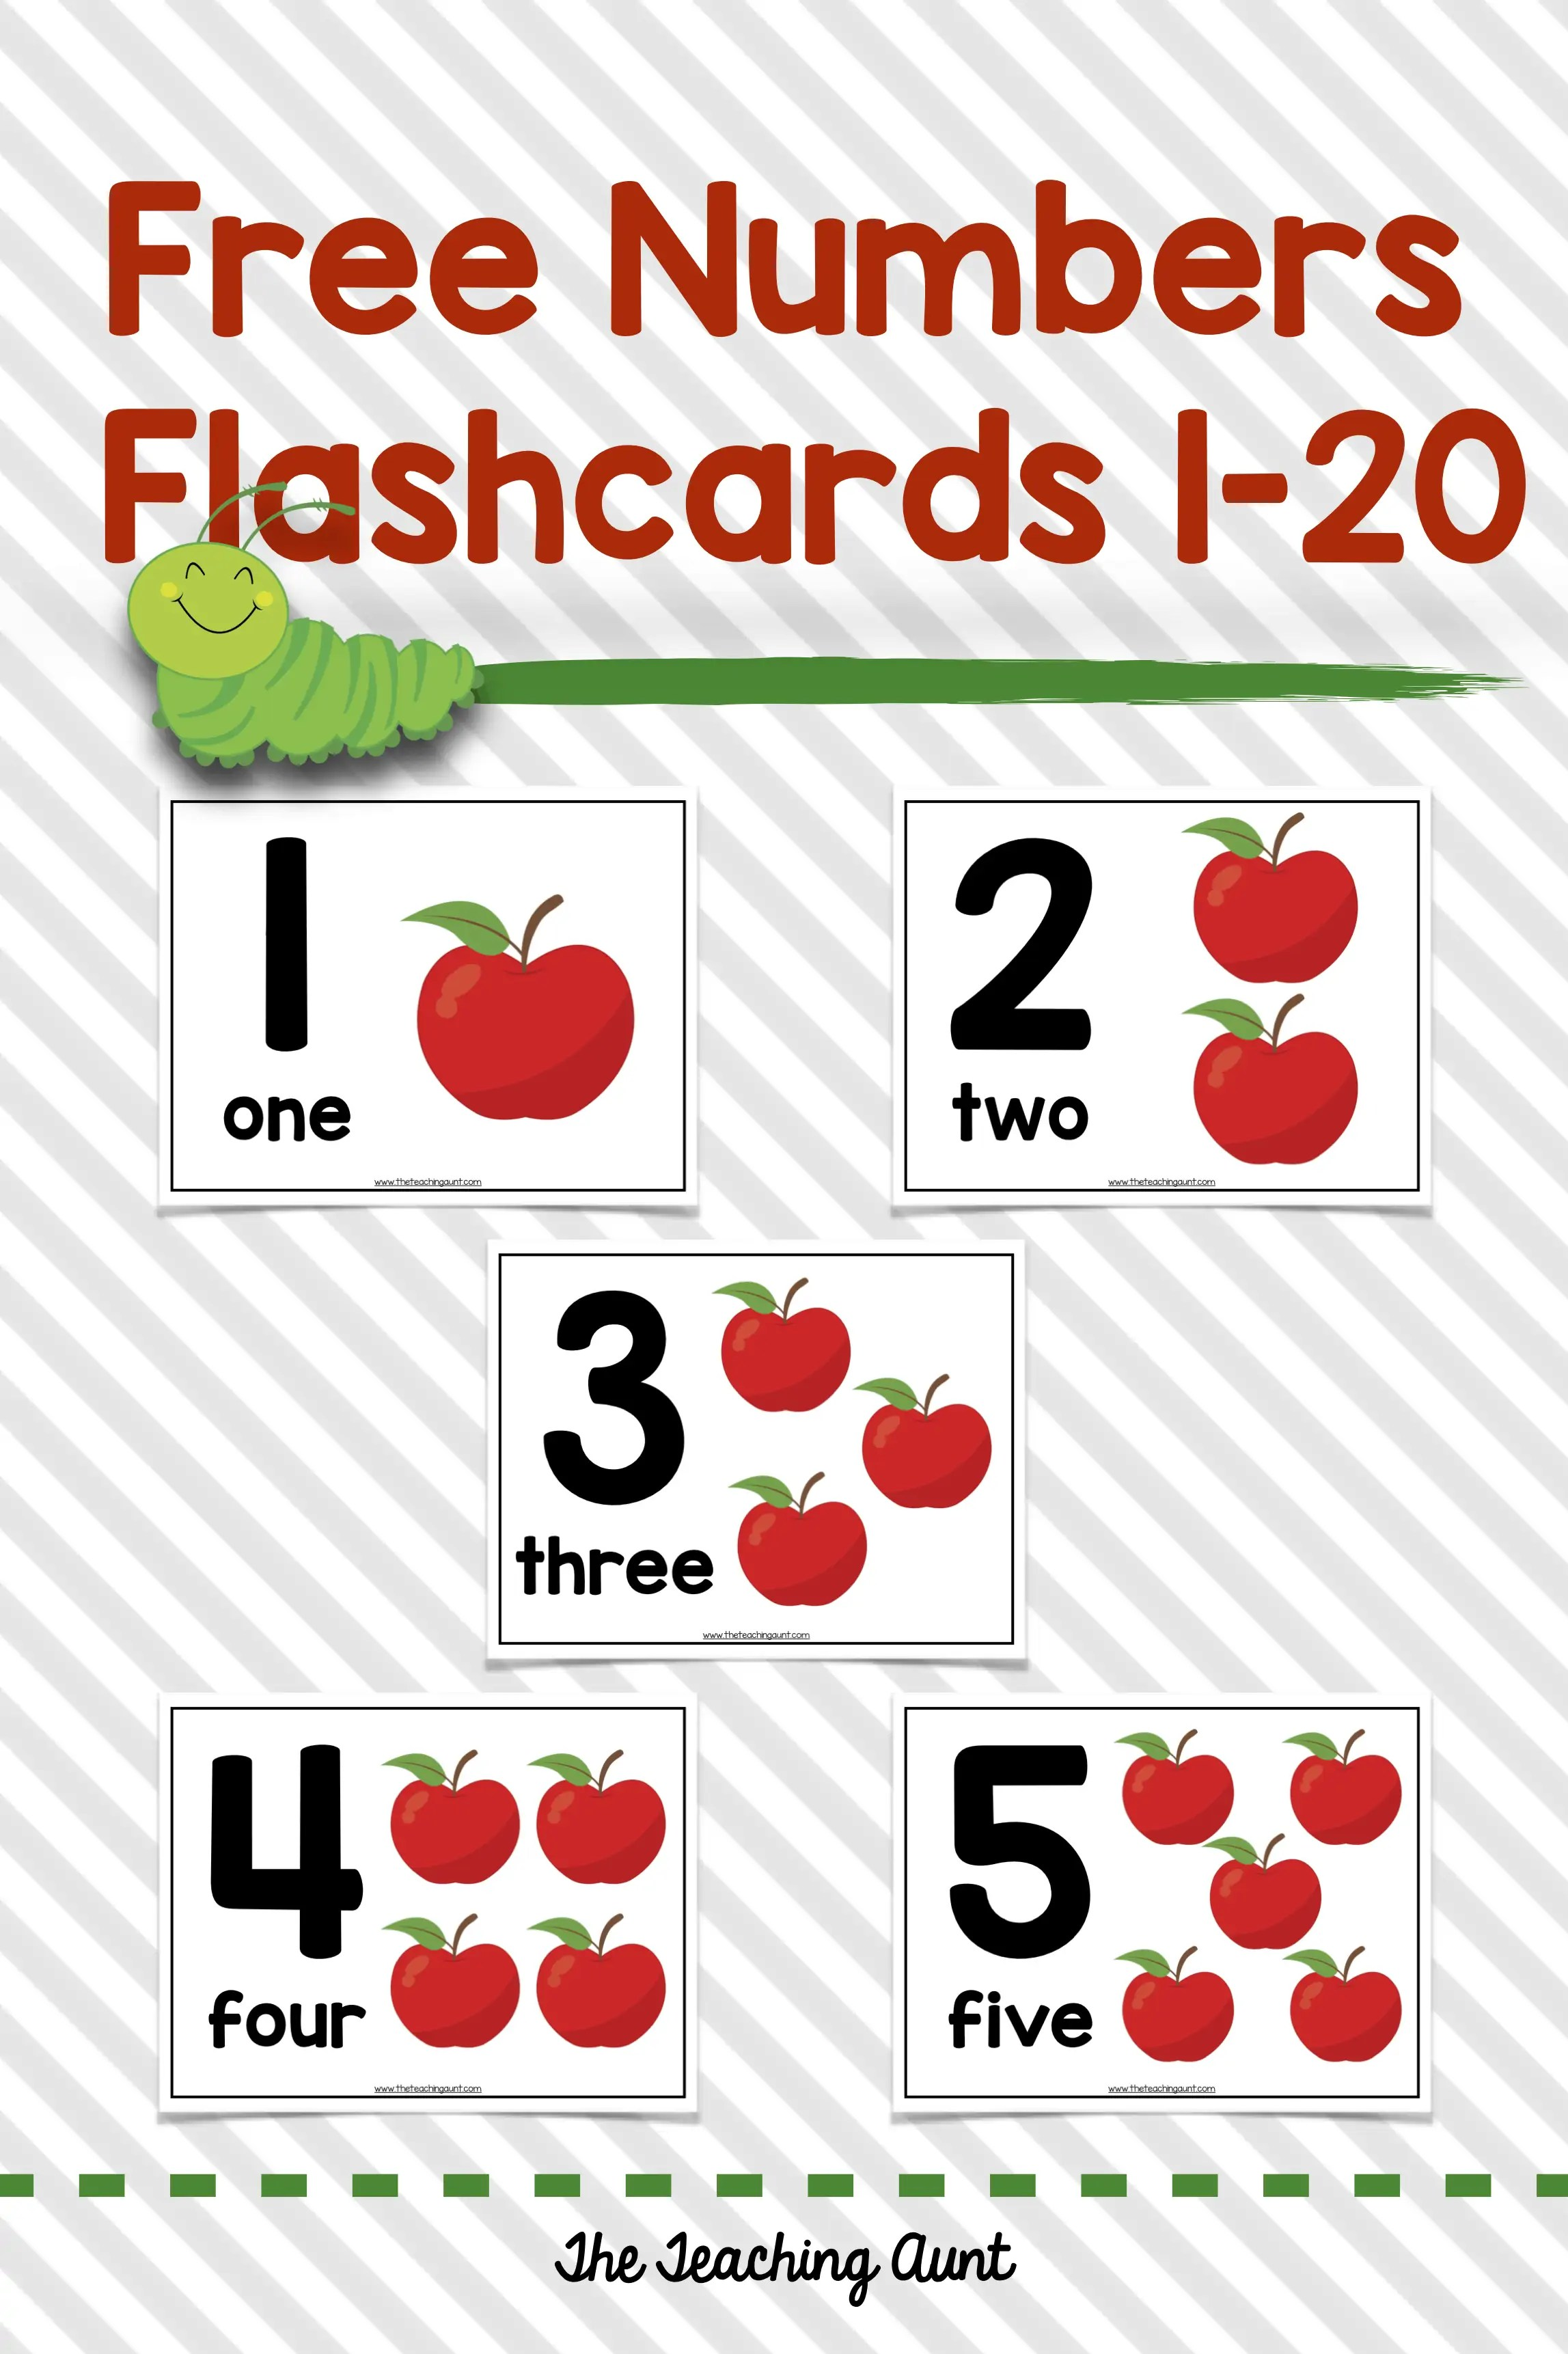 This is an image of Free Printable Numbers 1-20 with regard to booklet 120